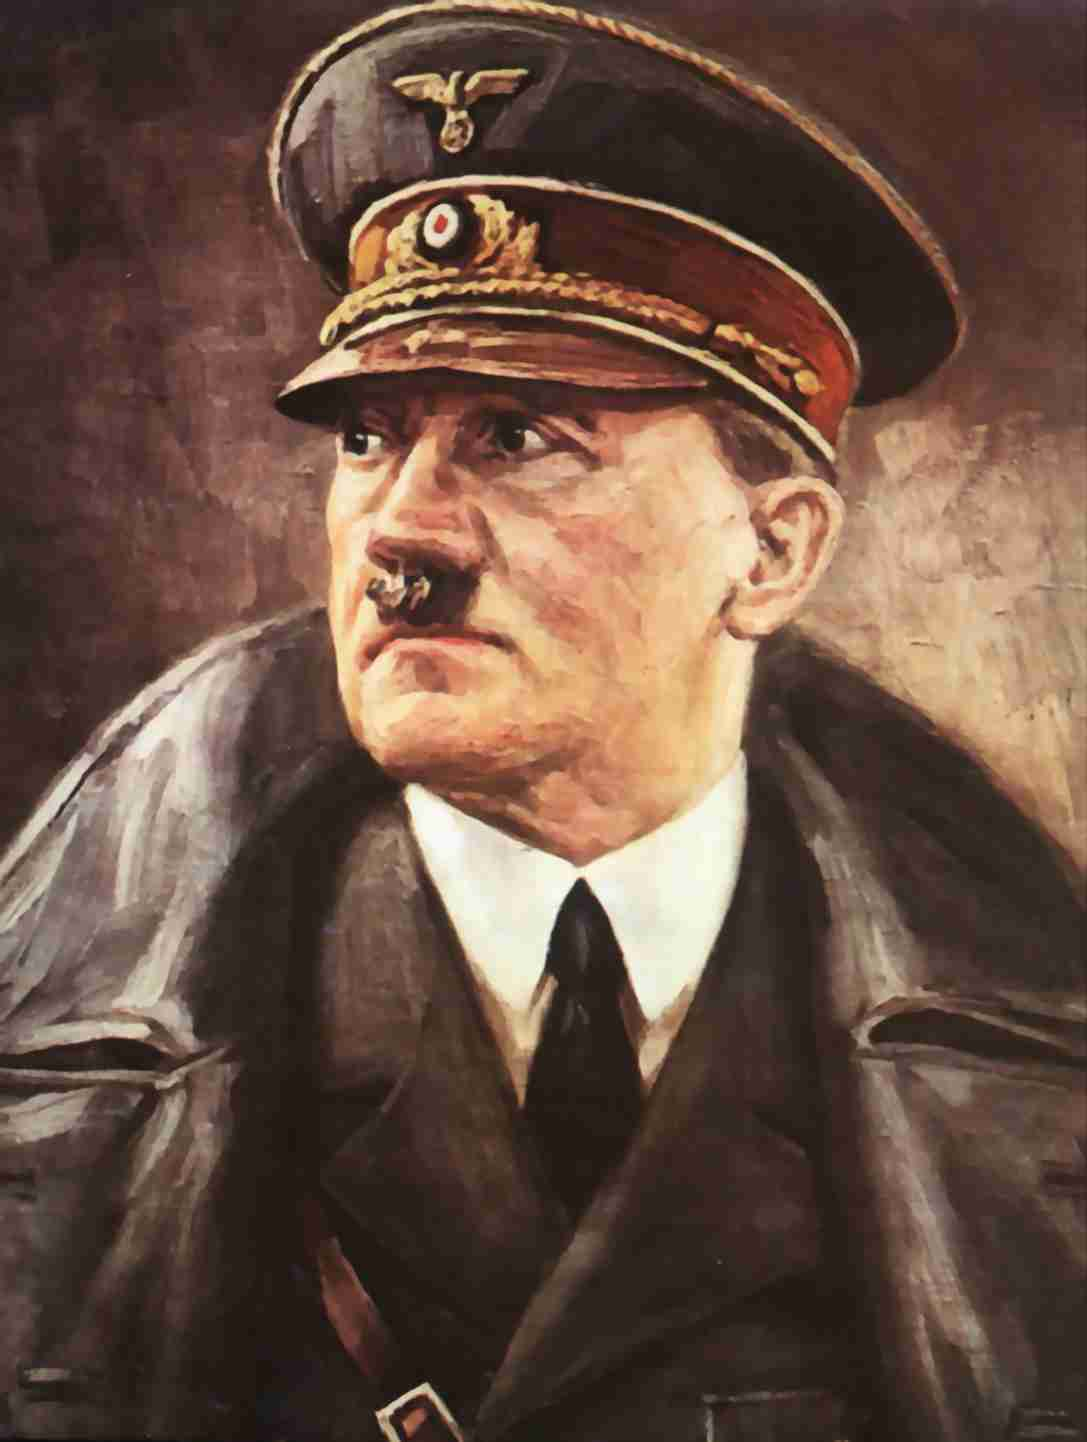 A history of race and religion discrimination in the nazi holocaust by adolf hitler